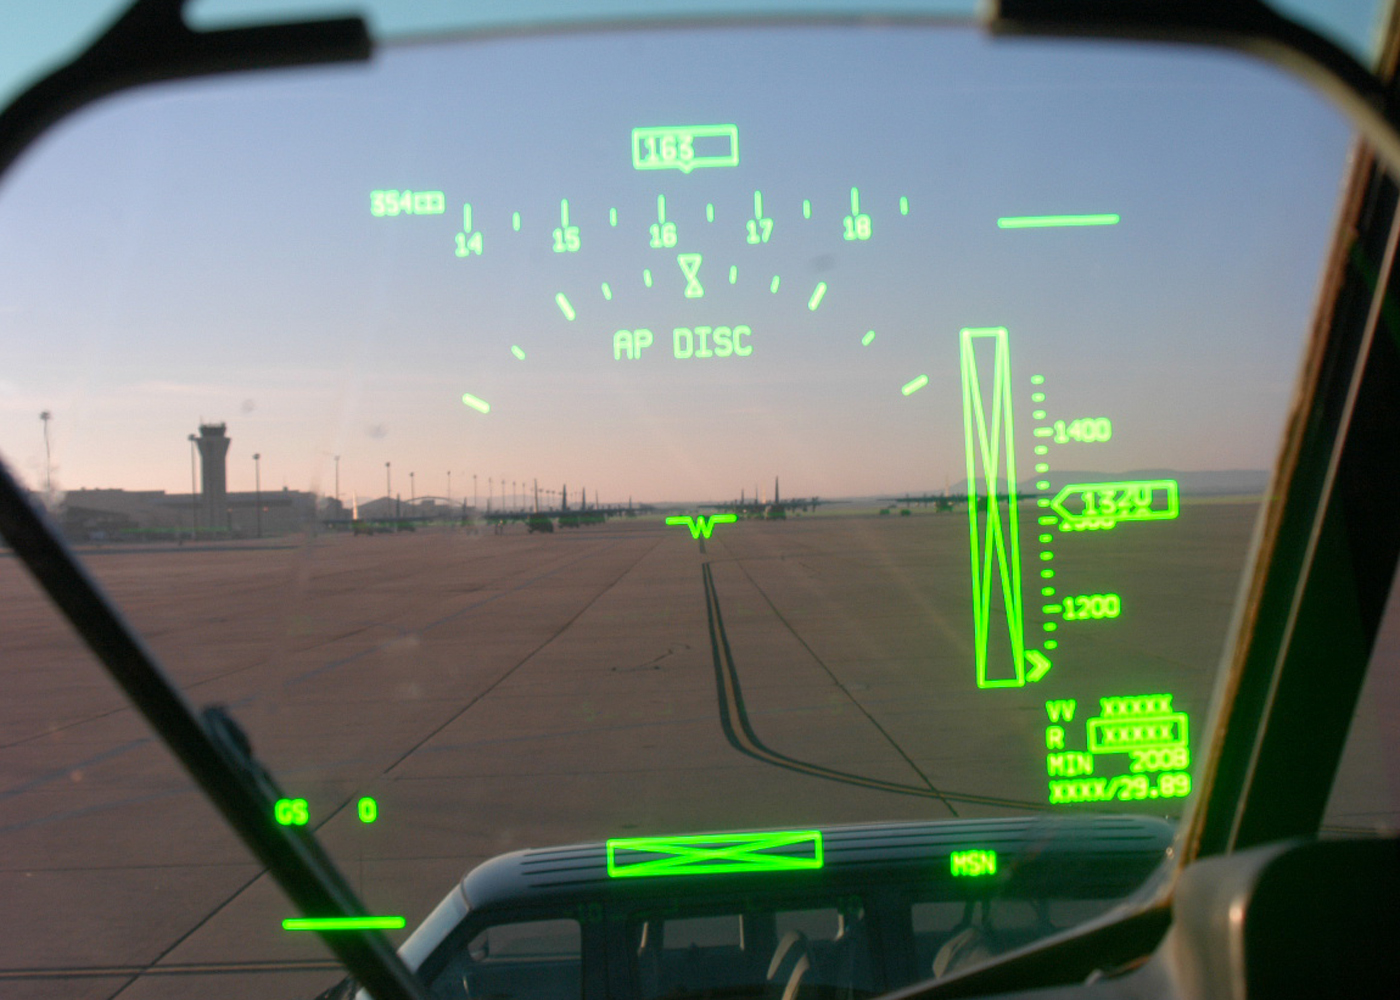 Military Plane hud technology